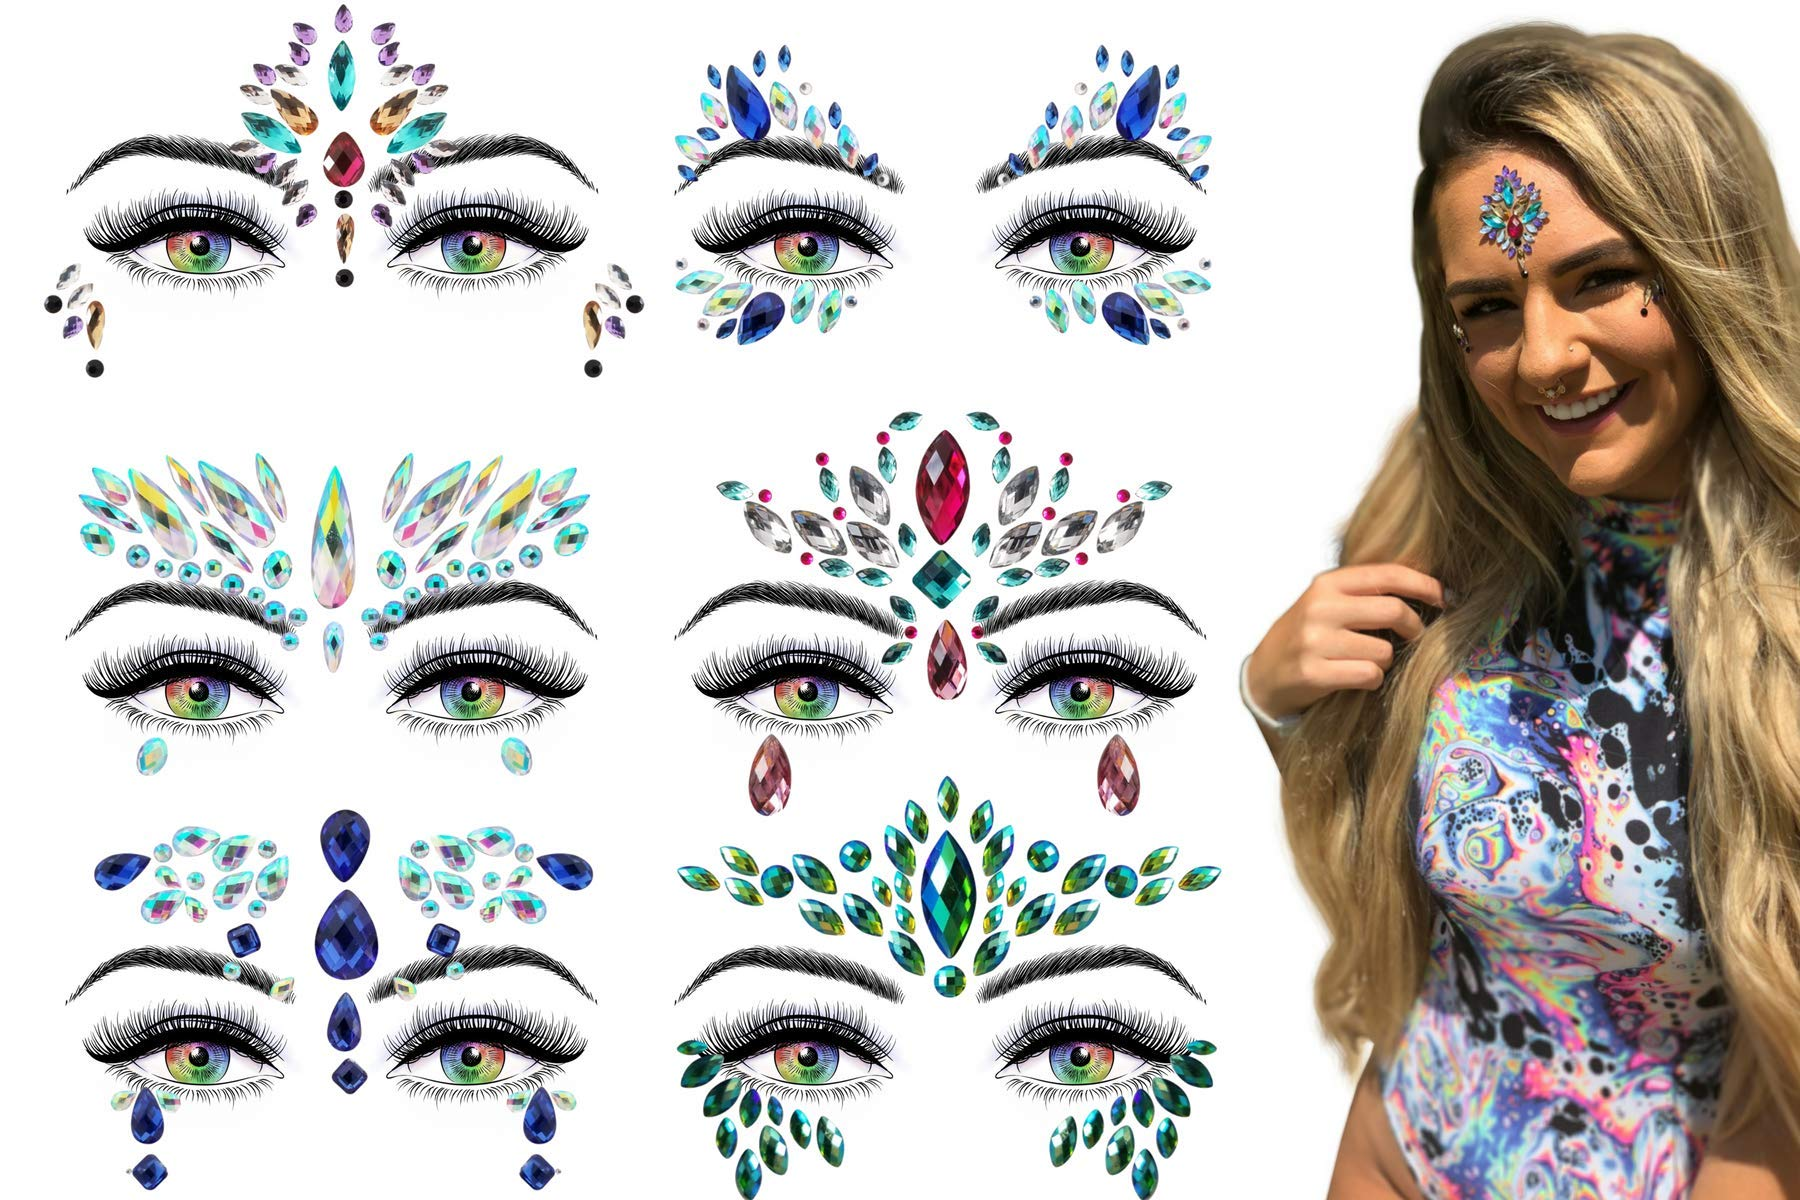 6 Stick On Face Jewels Sets, Gems, Glitter, Gem-Stones, Rhinestones Stickers, Temporary Tattoo - Self-Adhesive, Bindi, Indian, Mermaid Crystals. Accessories For Body, Women, Festivals, Rave, or Party by Luxxe Hour (Image #1)